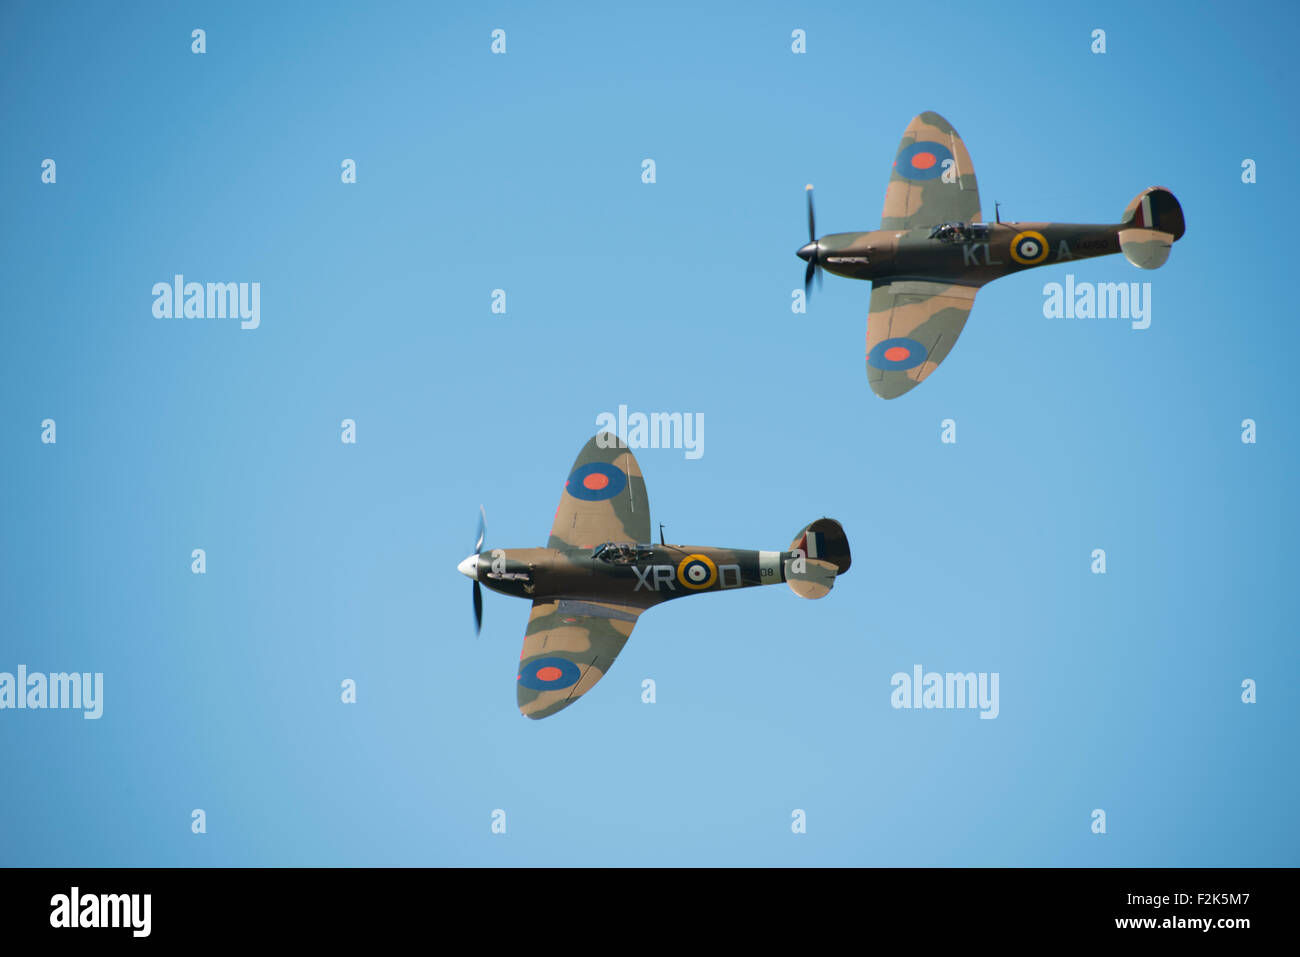 Duxford, UK. 20th Sep, 2015. Hurricanes at the Duxford Battle of Britain airshow, Sunday 20th Sept 2015. Credit: - Stock Image